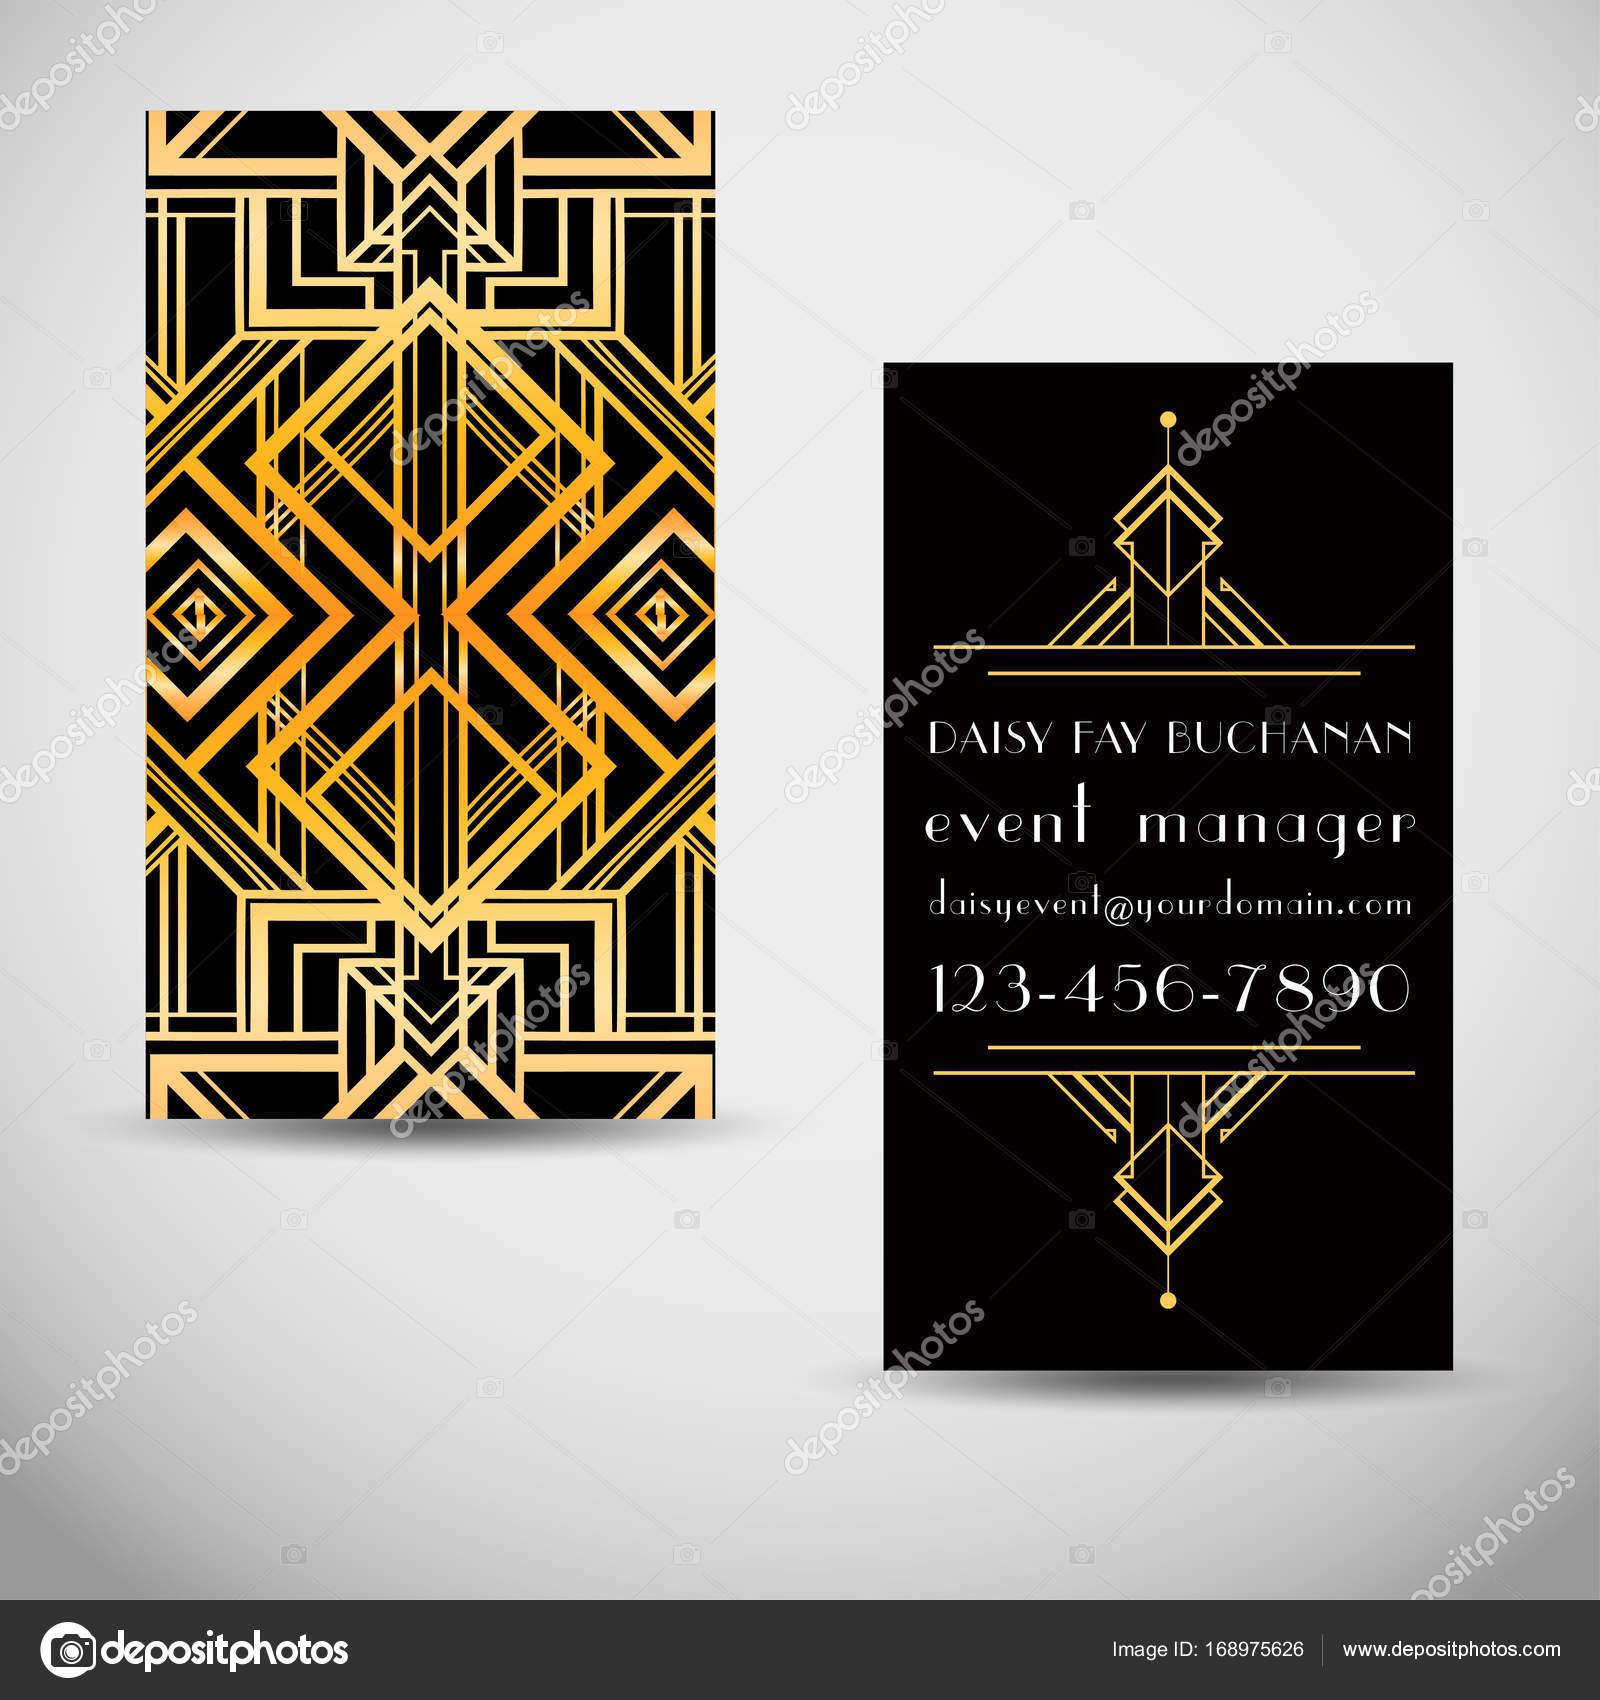 Art deco style business card stock vector vgorbash 168975626 art deco style business card template abstract vintage patterns and design elements retro party geometric background set 1920s style magicingreecefo Choice Image